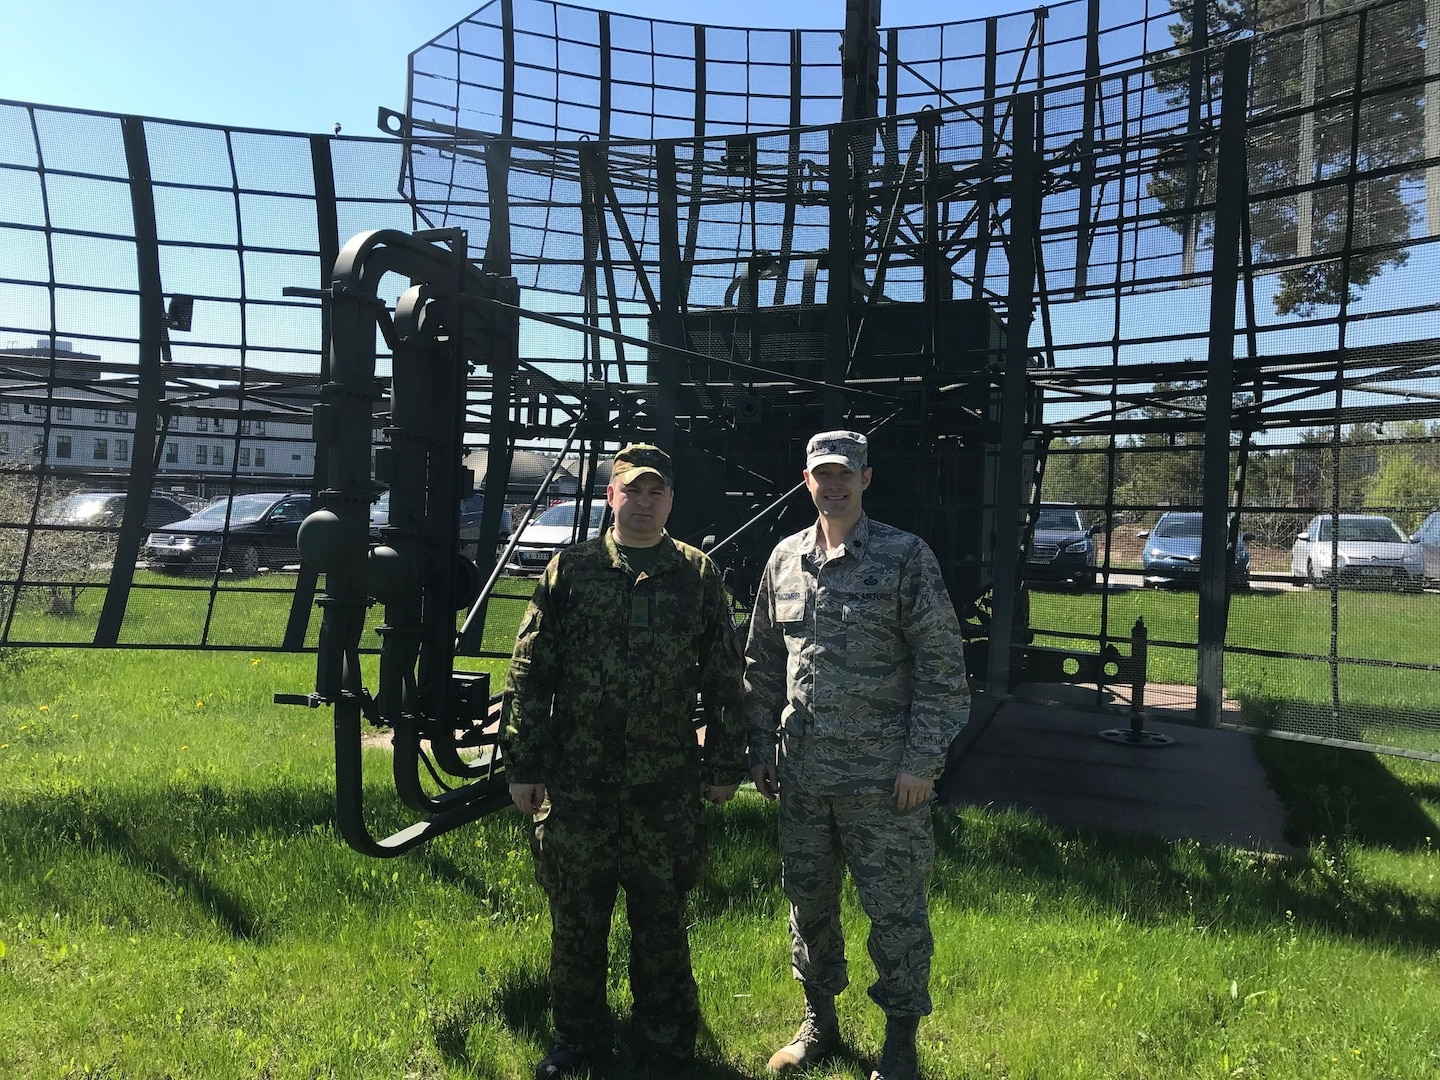 Lt. Col. Cam Macomber, intelligence officer, Joint Force Headquarters, Rhode Island Air National Guard stands with Maj Klaus-Jurgen Kaivo, intelligence officer, Estonian Air Force during HEDGEHOG 2018. Photo courtesy of Lt. Col. Cam Macomber.